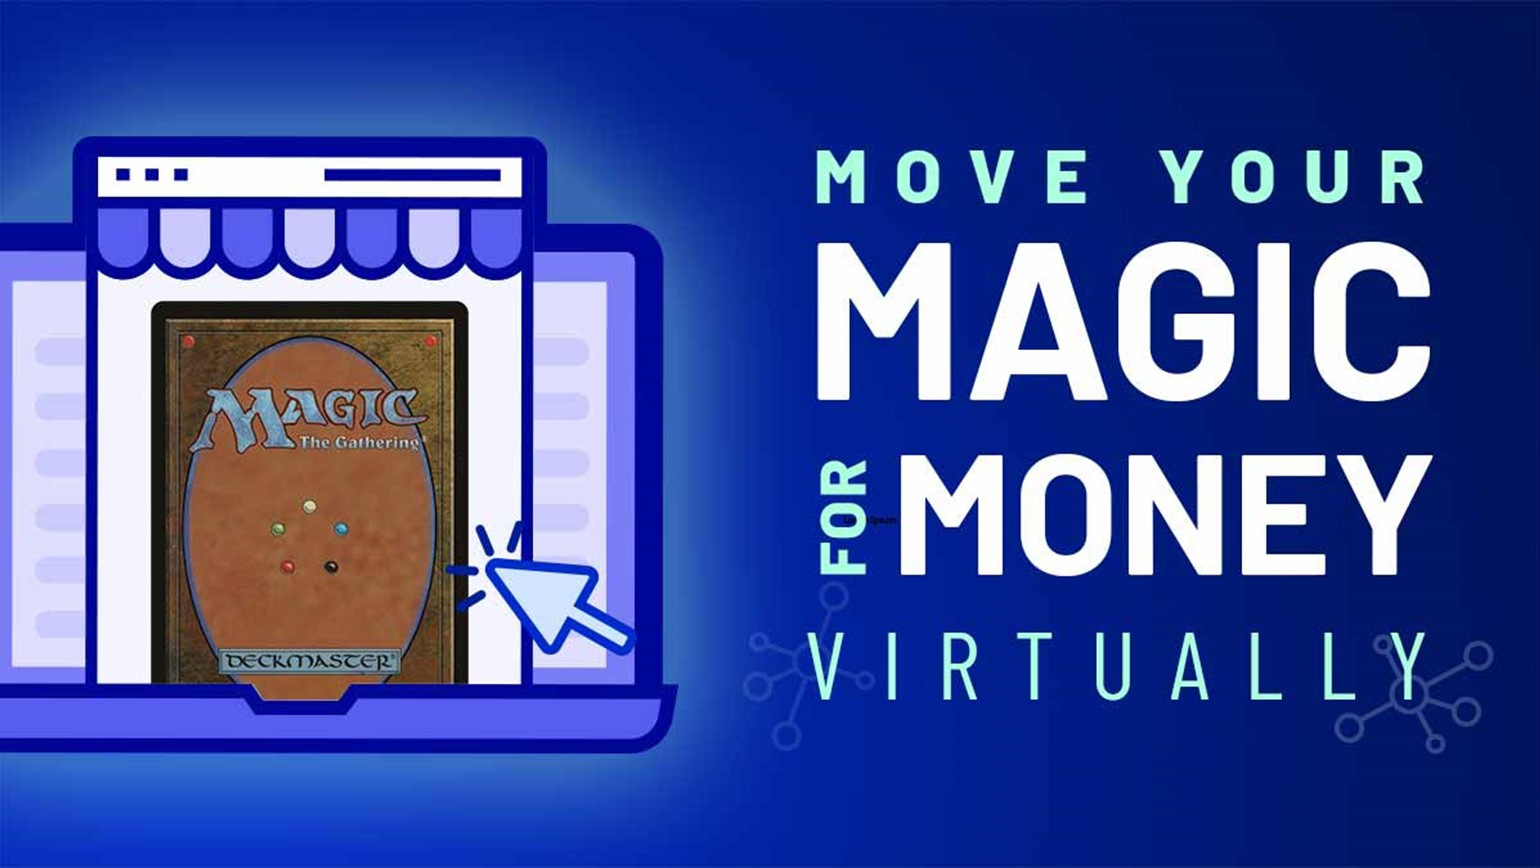 Move Your Magic